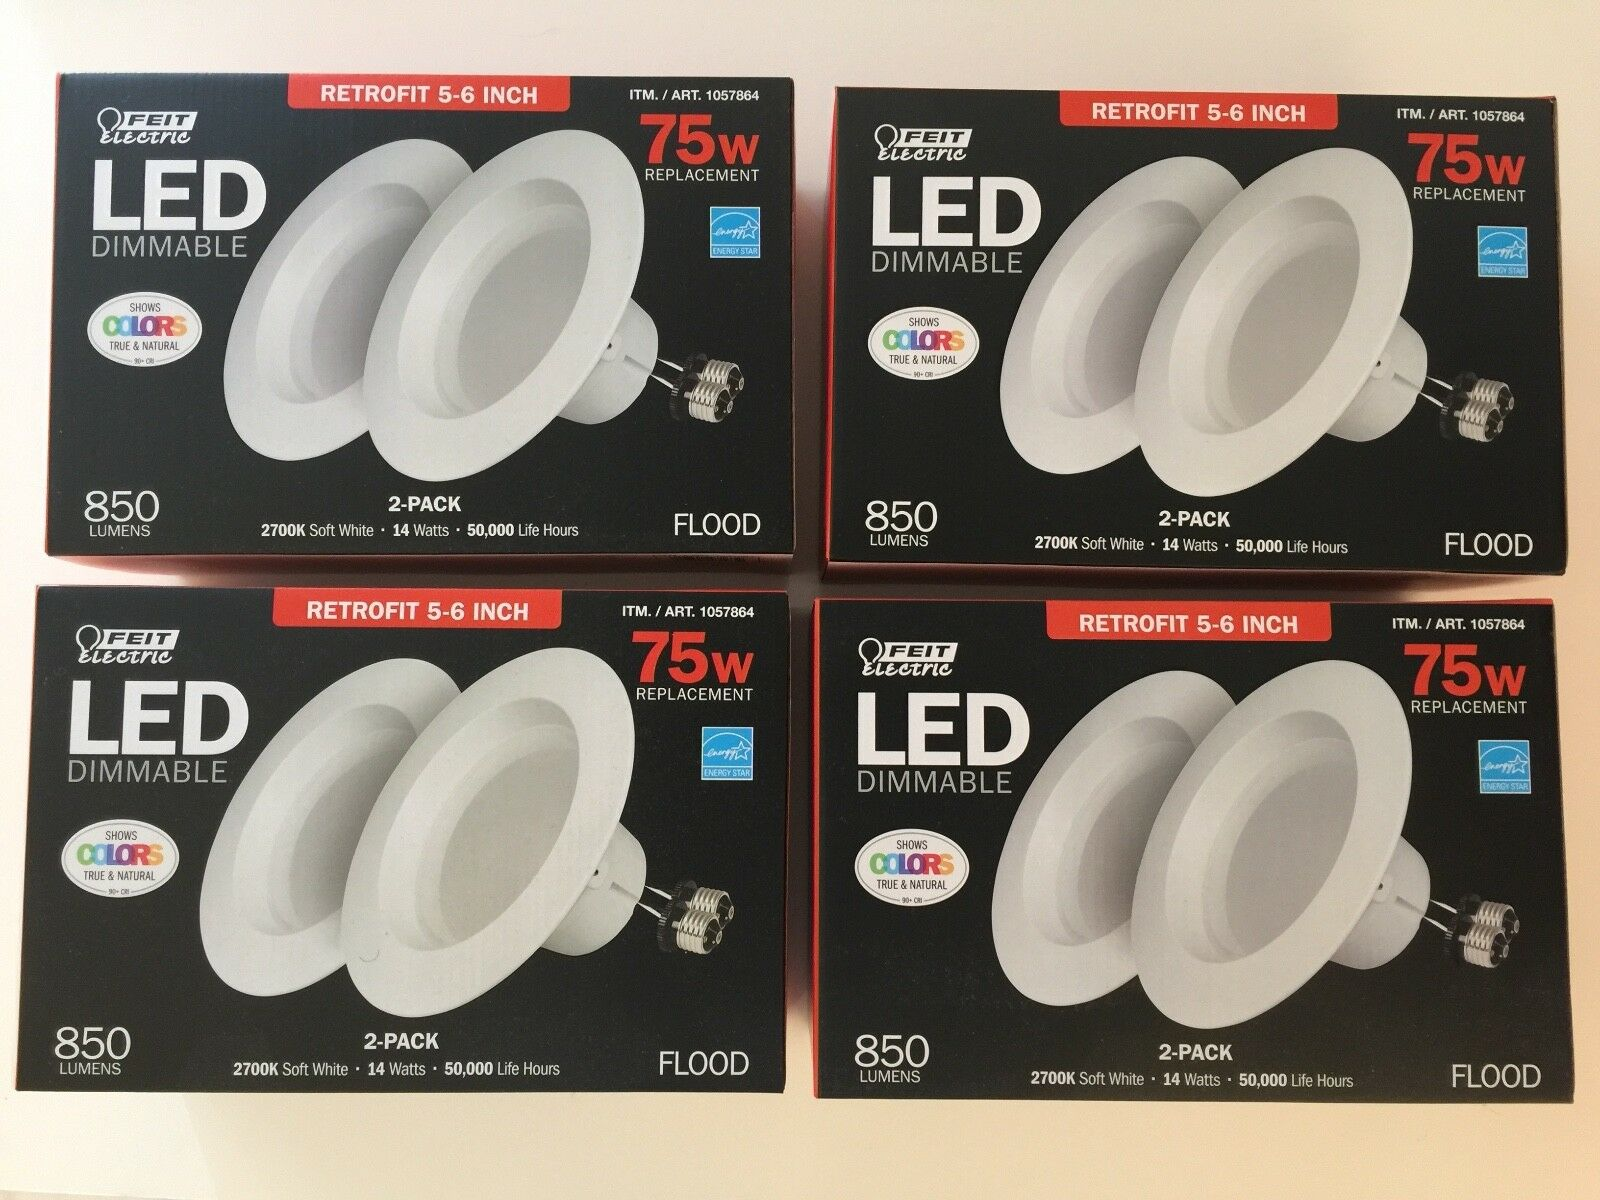 8 x Feit Electric 5-6 inch LED Recessed Retrofit Lighting Kit 75w Dimmable NEW